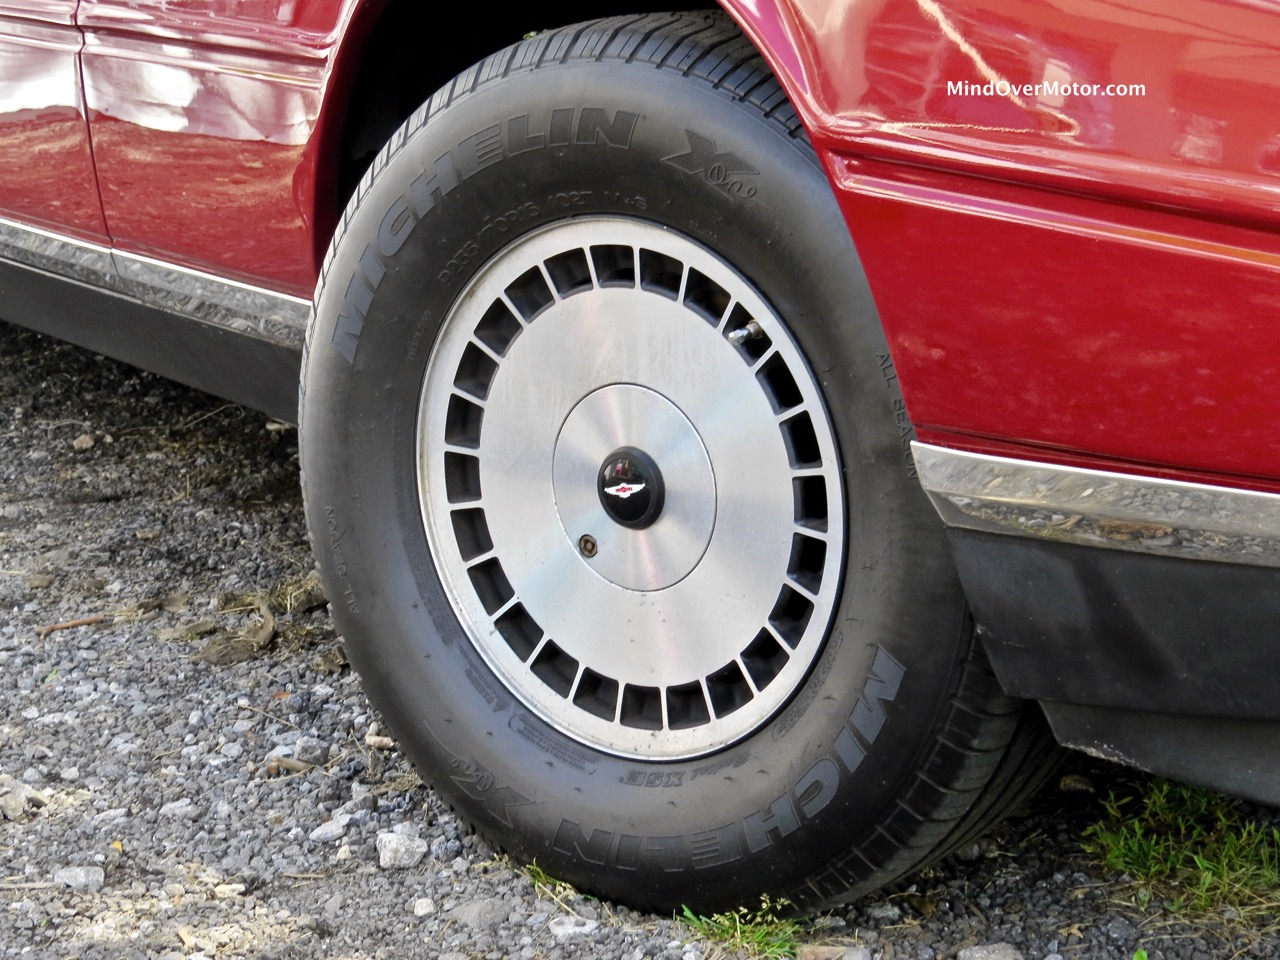 Aston Martin Lagonda Wheel